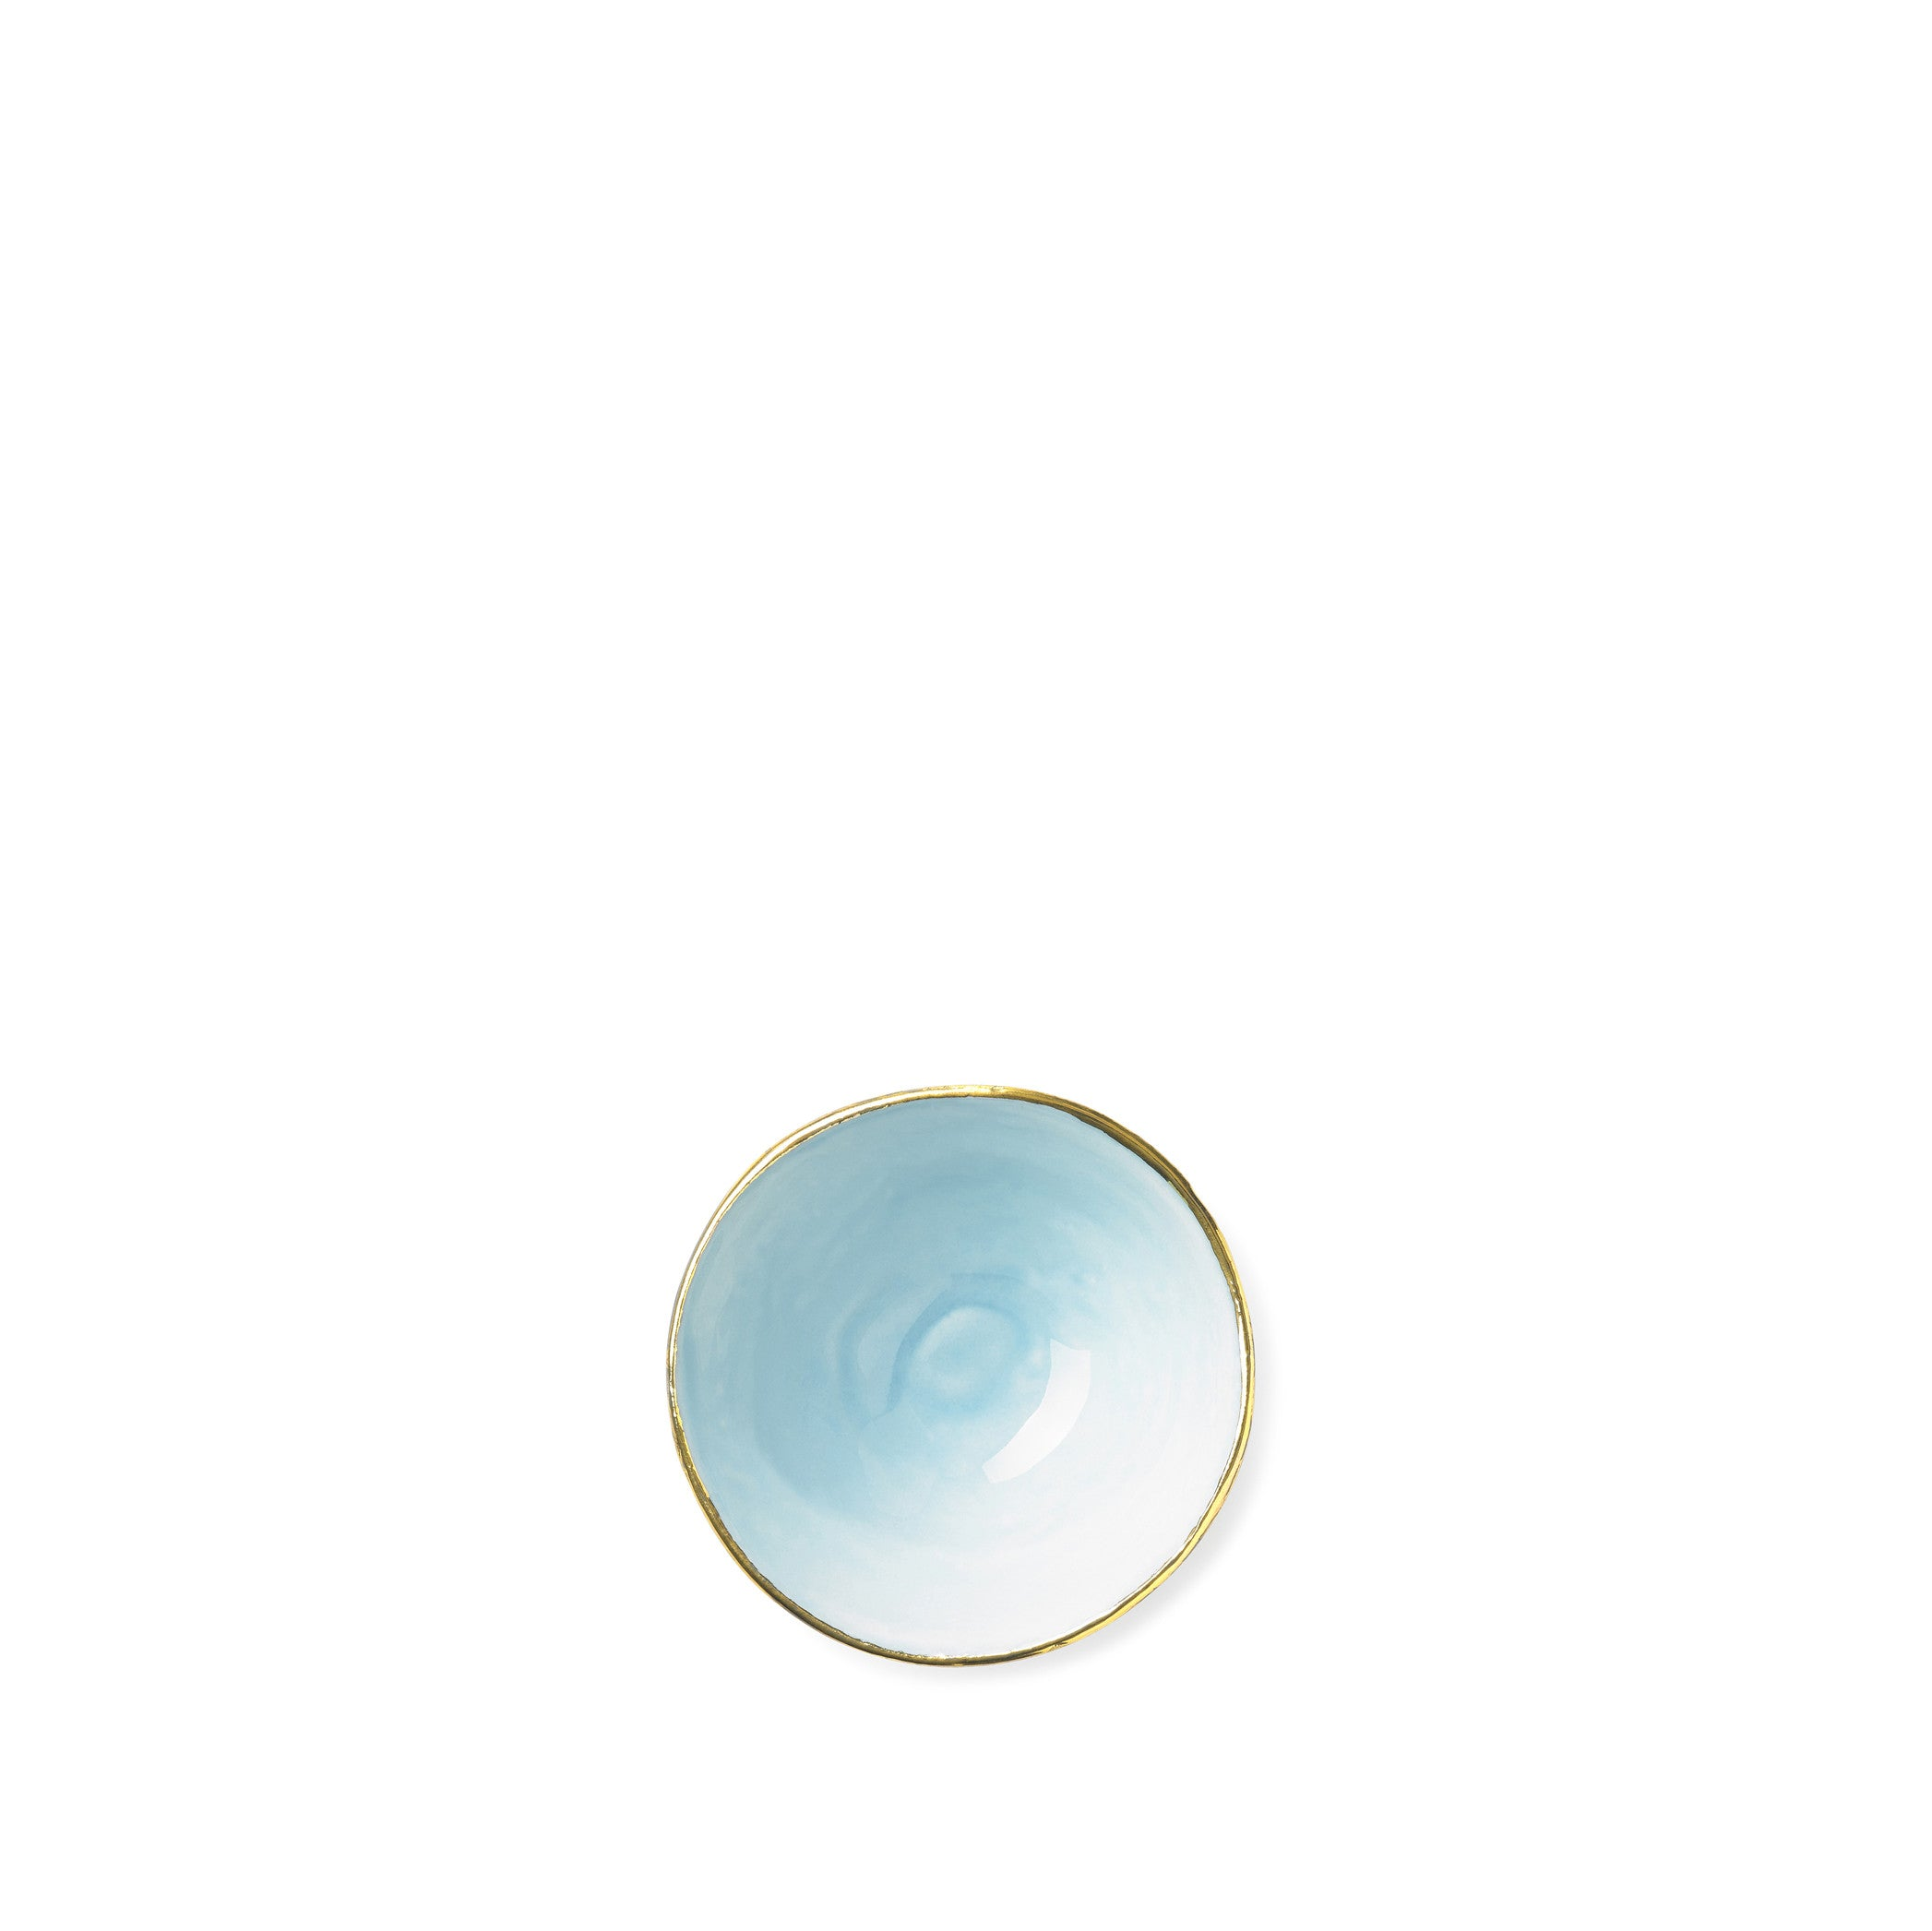 Full Painted Light Blue Ceramic Bowl with Gold Rim, 6cm